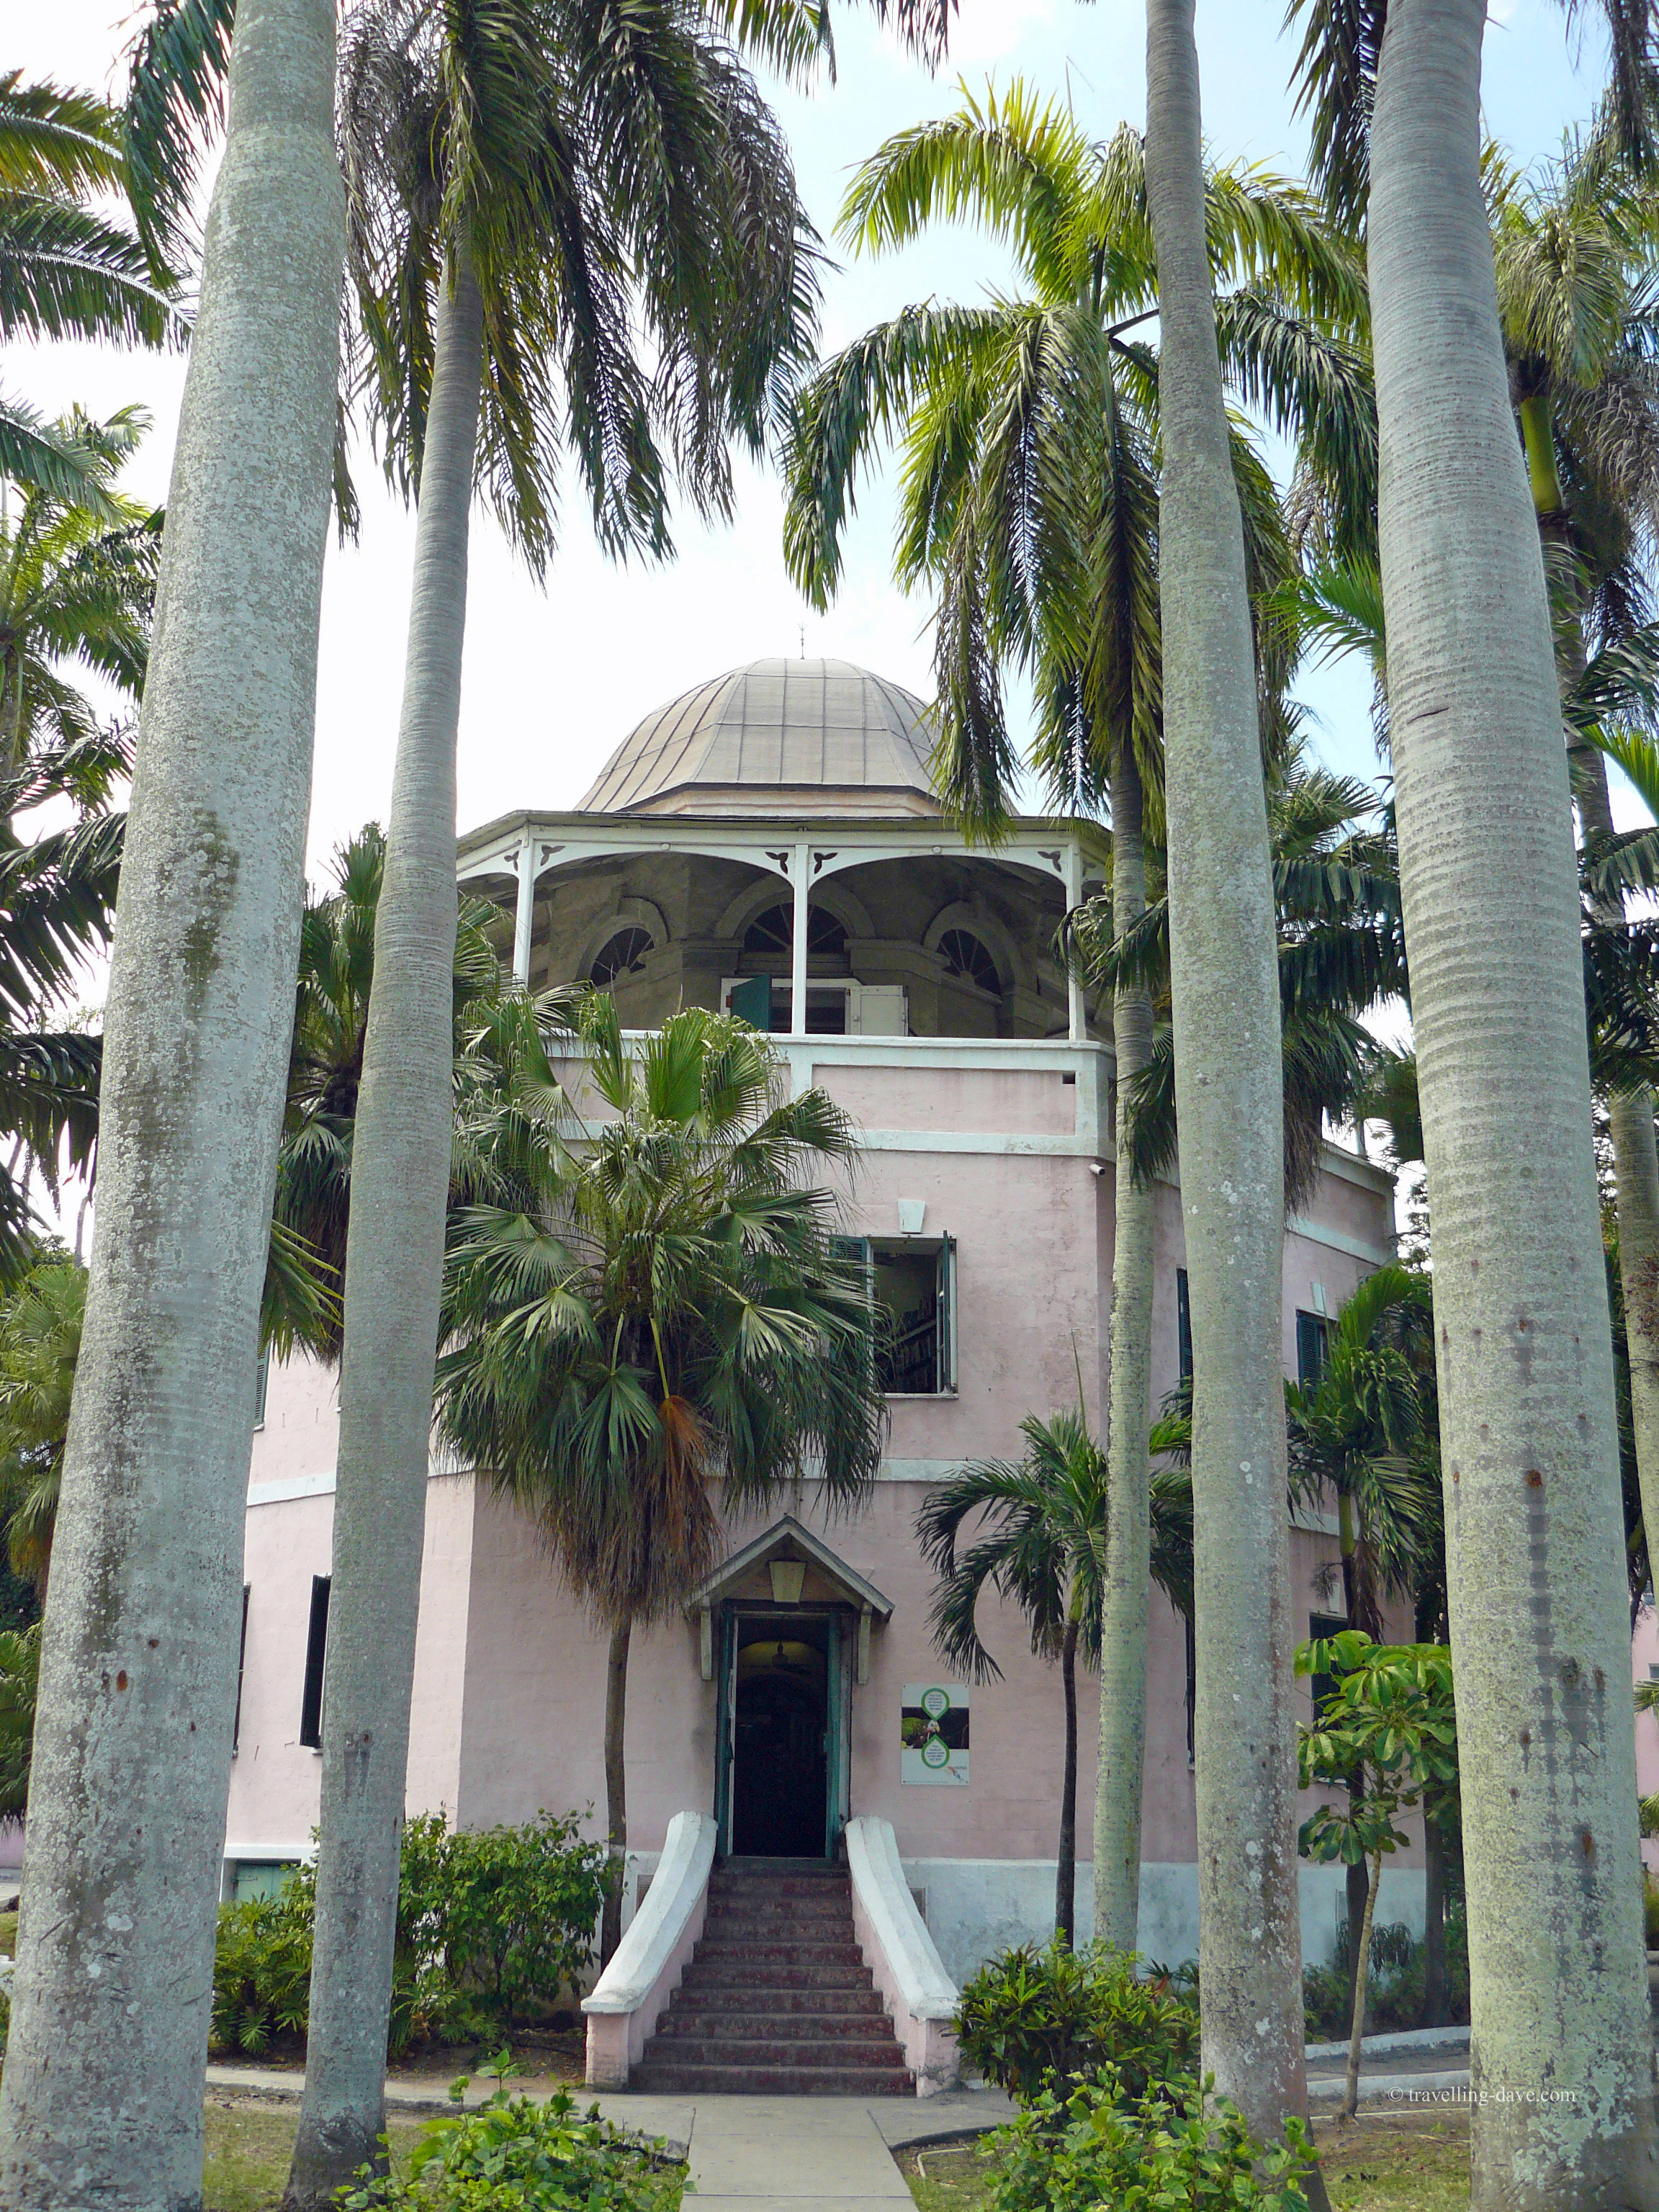 The building housing Nassau Public Library in the Bahamas.